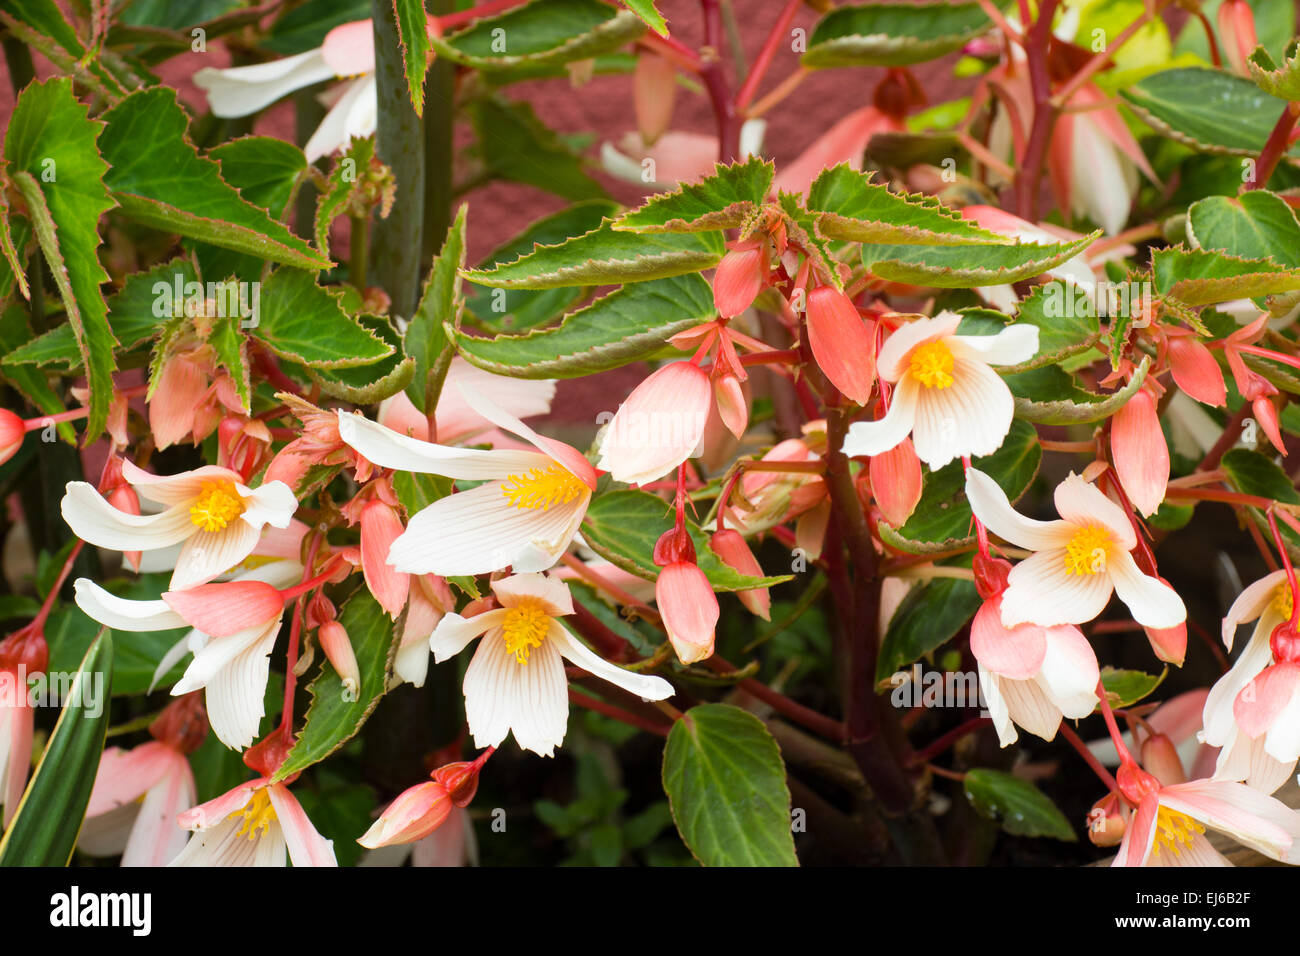 Peach And White Flowers Of The Tender Trailing Perennial Begonia